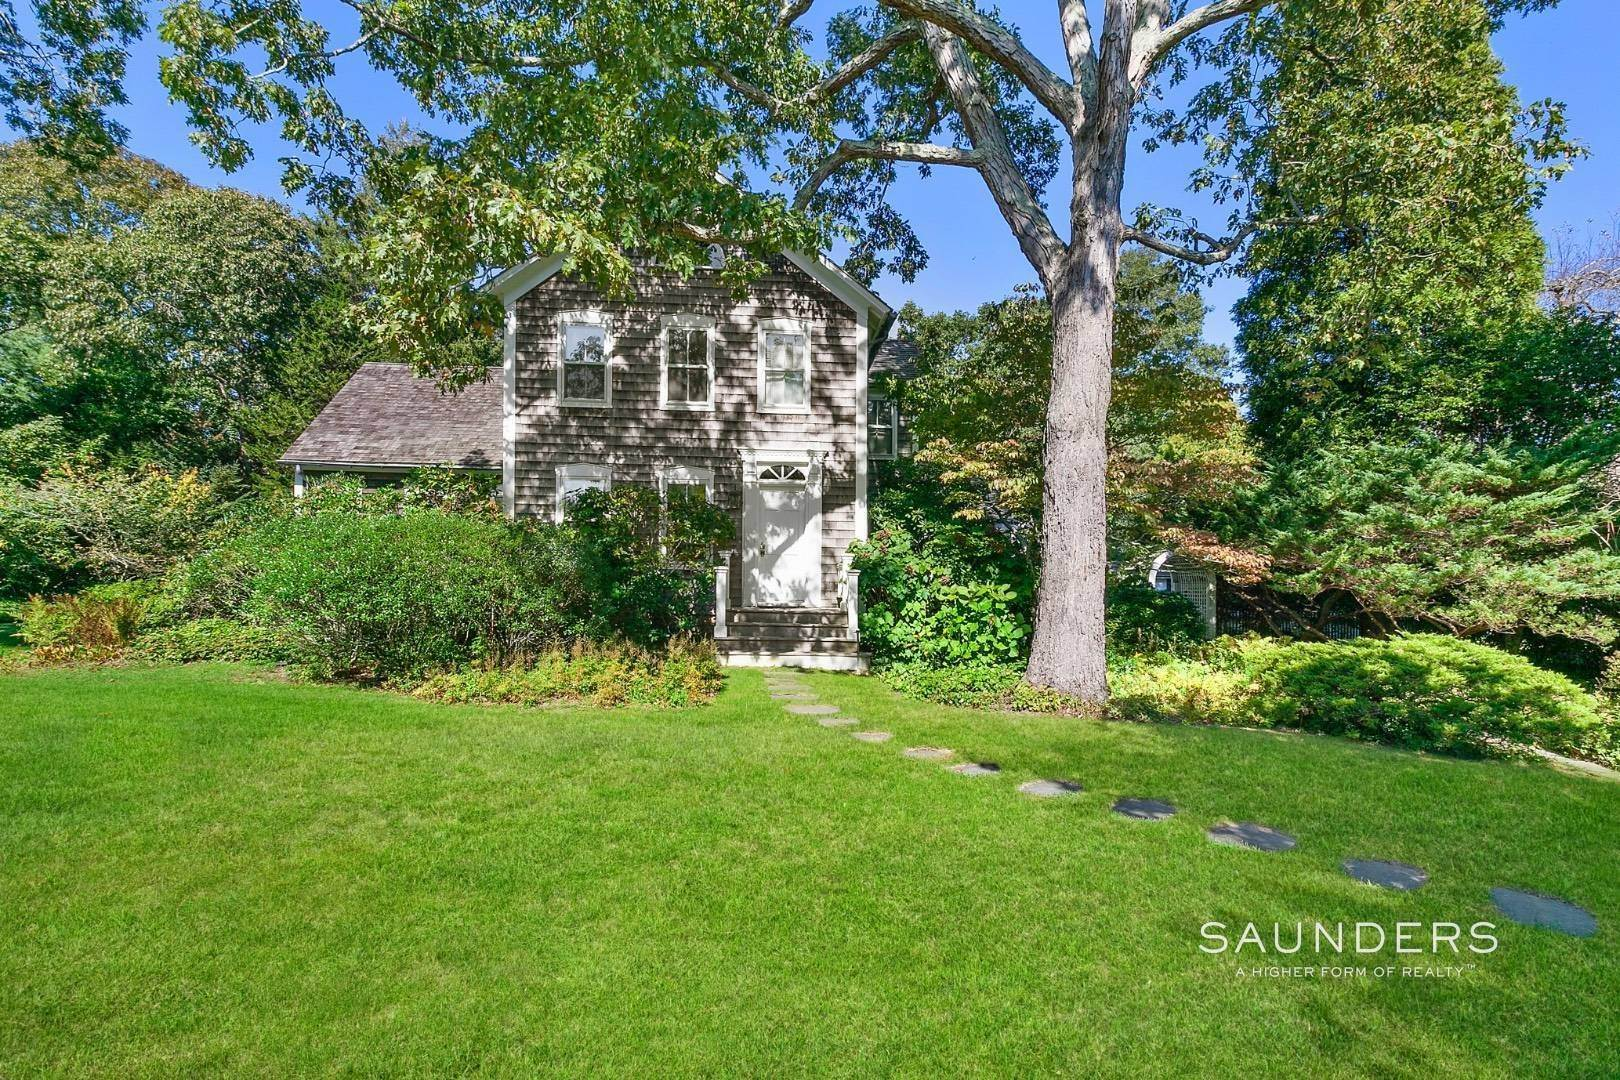 2. Single Family Homes for Sale at Sayres Path 2 Acre Opportunity 129 Sayres Path, Wainscott, East Hampton Town, NY 11937